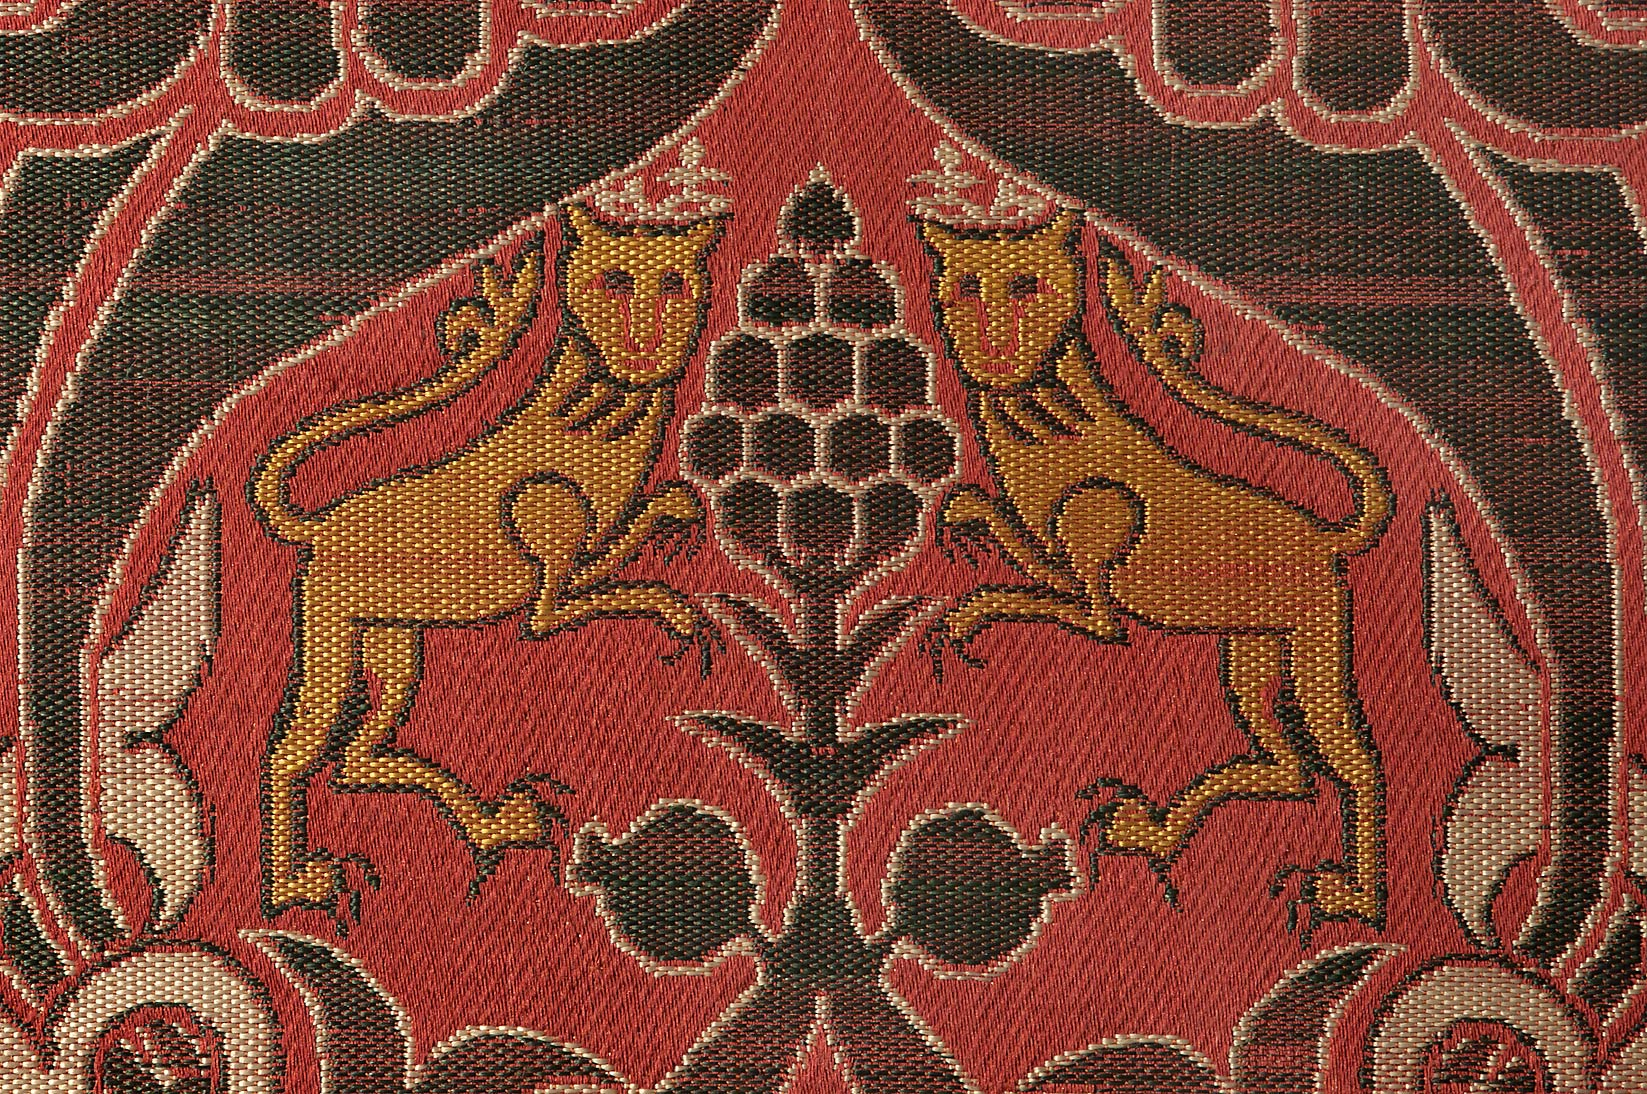 Eastern carpet on display in Museum of Islamic Art. Doha, Qatar